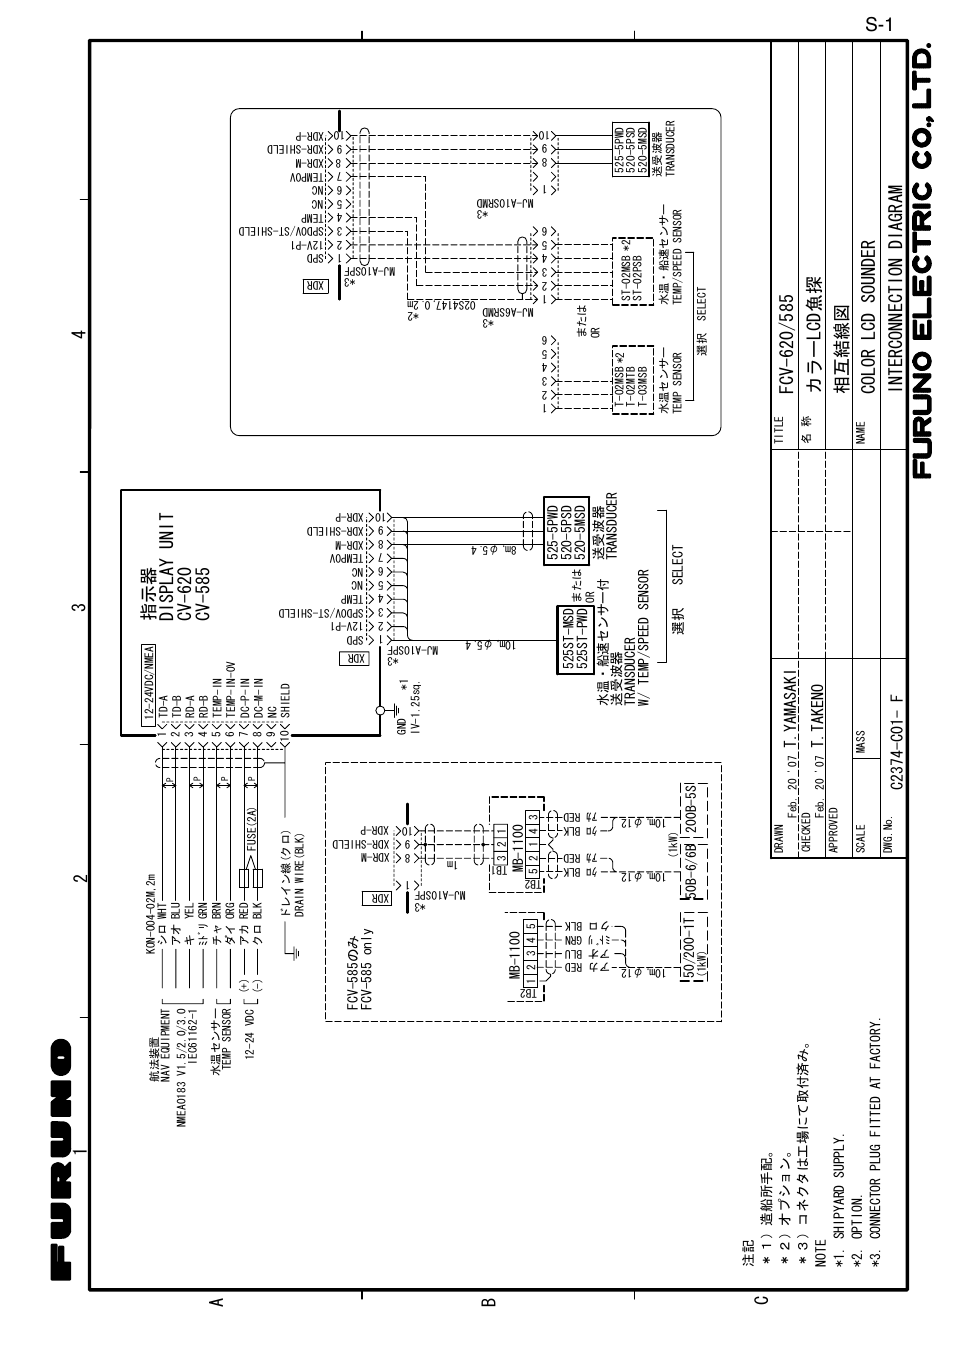 furuno transducer wiring diagram dual 4 ohm subwoofer fcv 620 : 29 images - diagrams | edmiracle.co